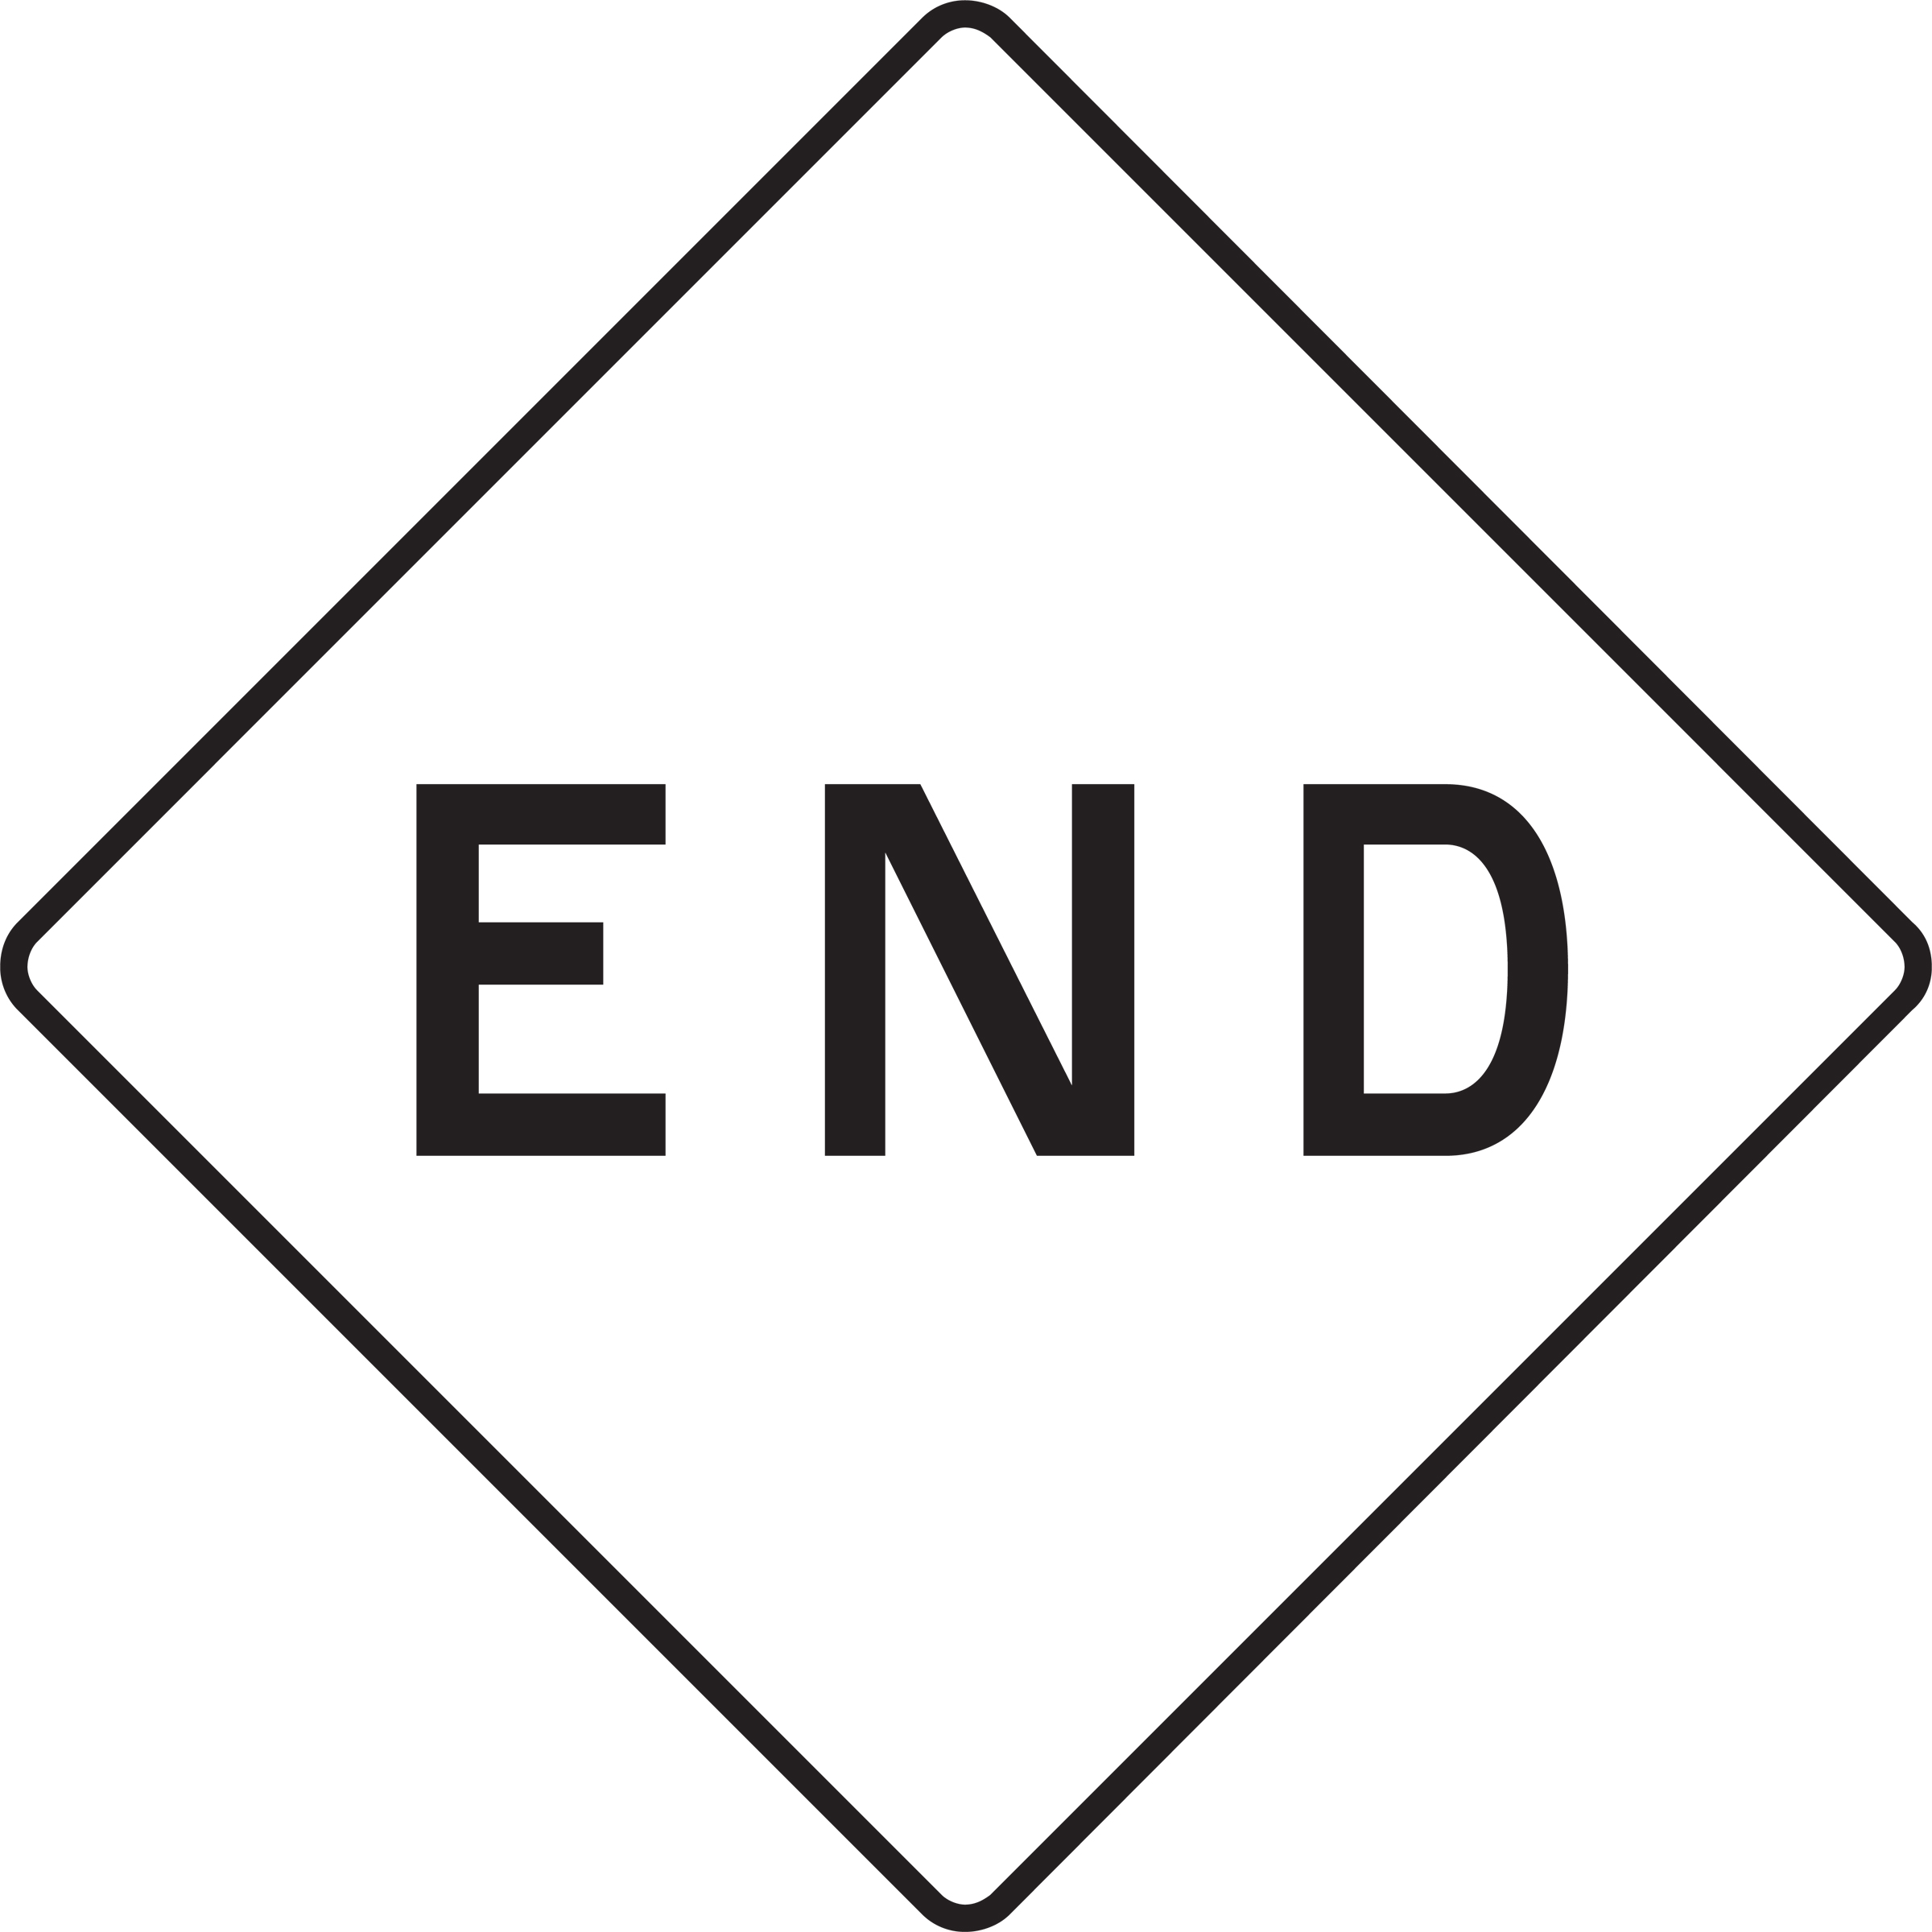 Page End Clipart